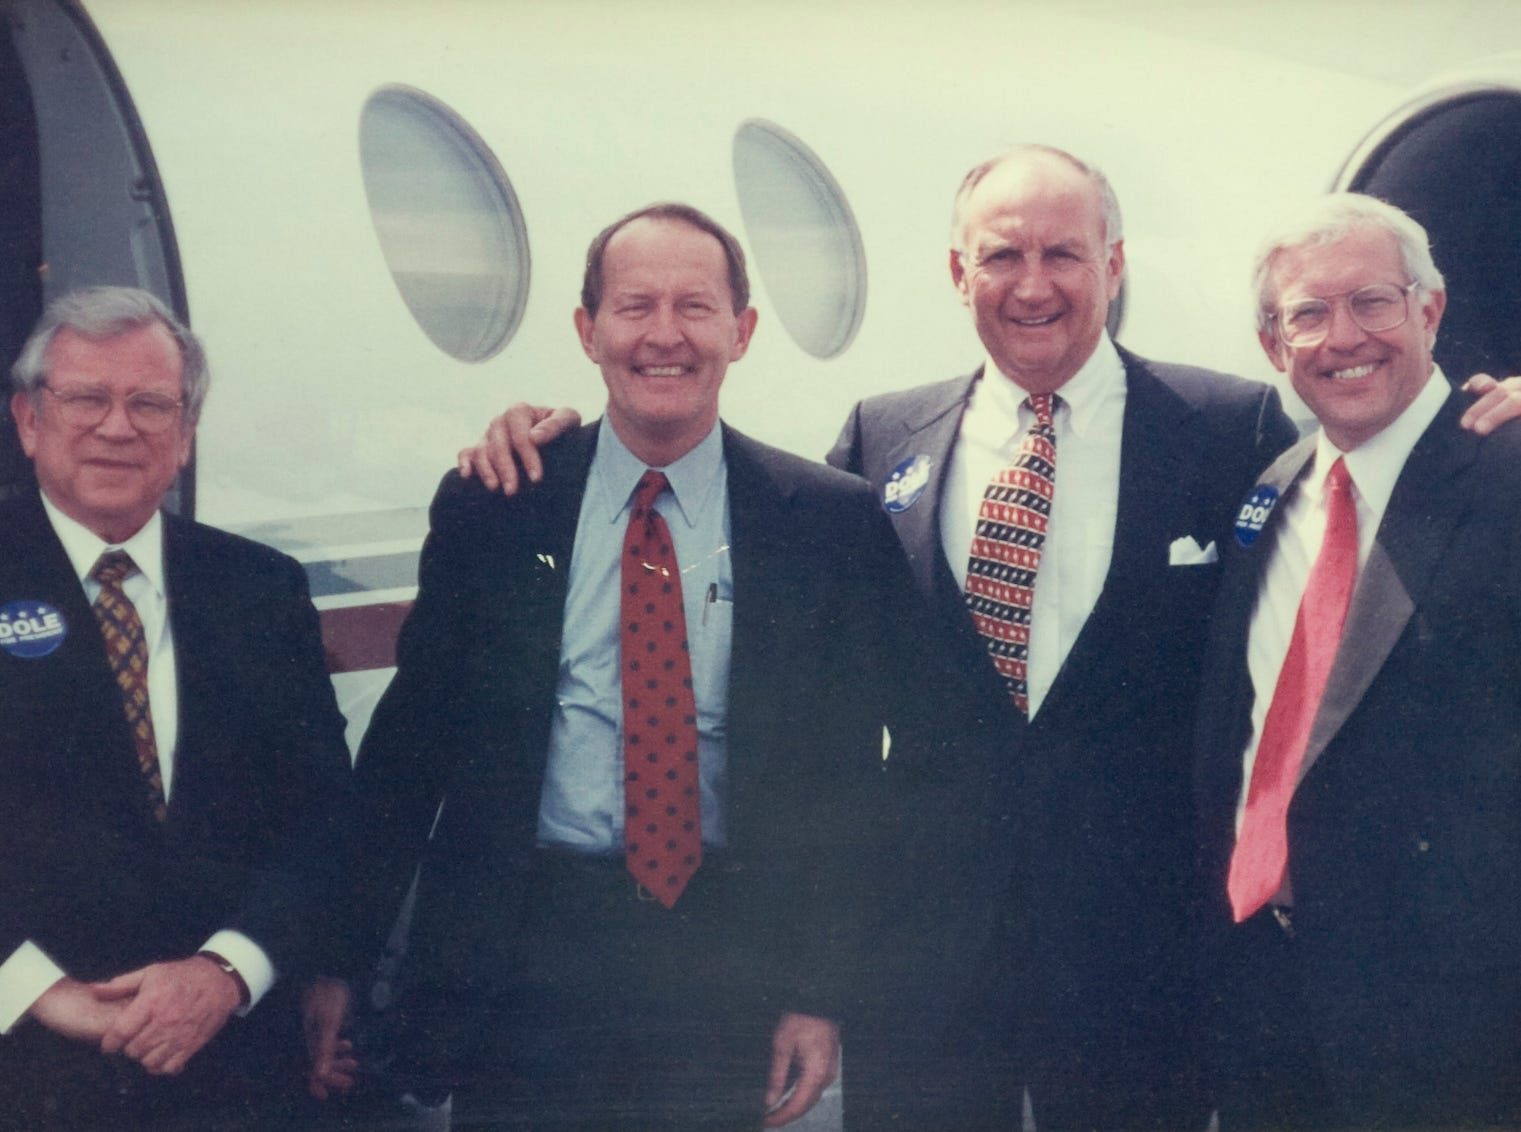 Former Senate Majority Leader, Republican U.S. Senator from Tennessee Howard Baker, Senior United States Senator from Tennessee and Conference Chair of the Republican Party Lamar Alexander (left) with Pilot Corp. Founder and Chariman Jim Haslam (center) and former TN governor and congressman Don Sundquist (right). Photos submitted by Haslam Family